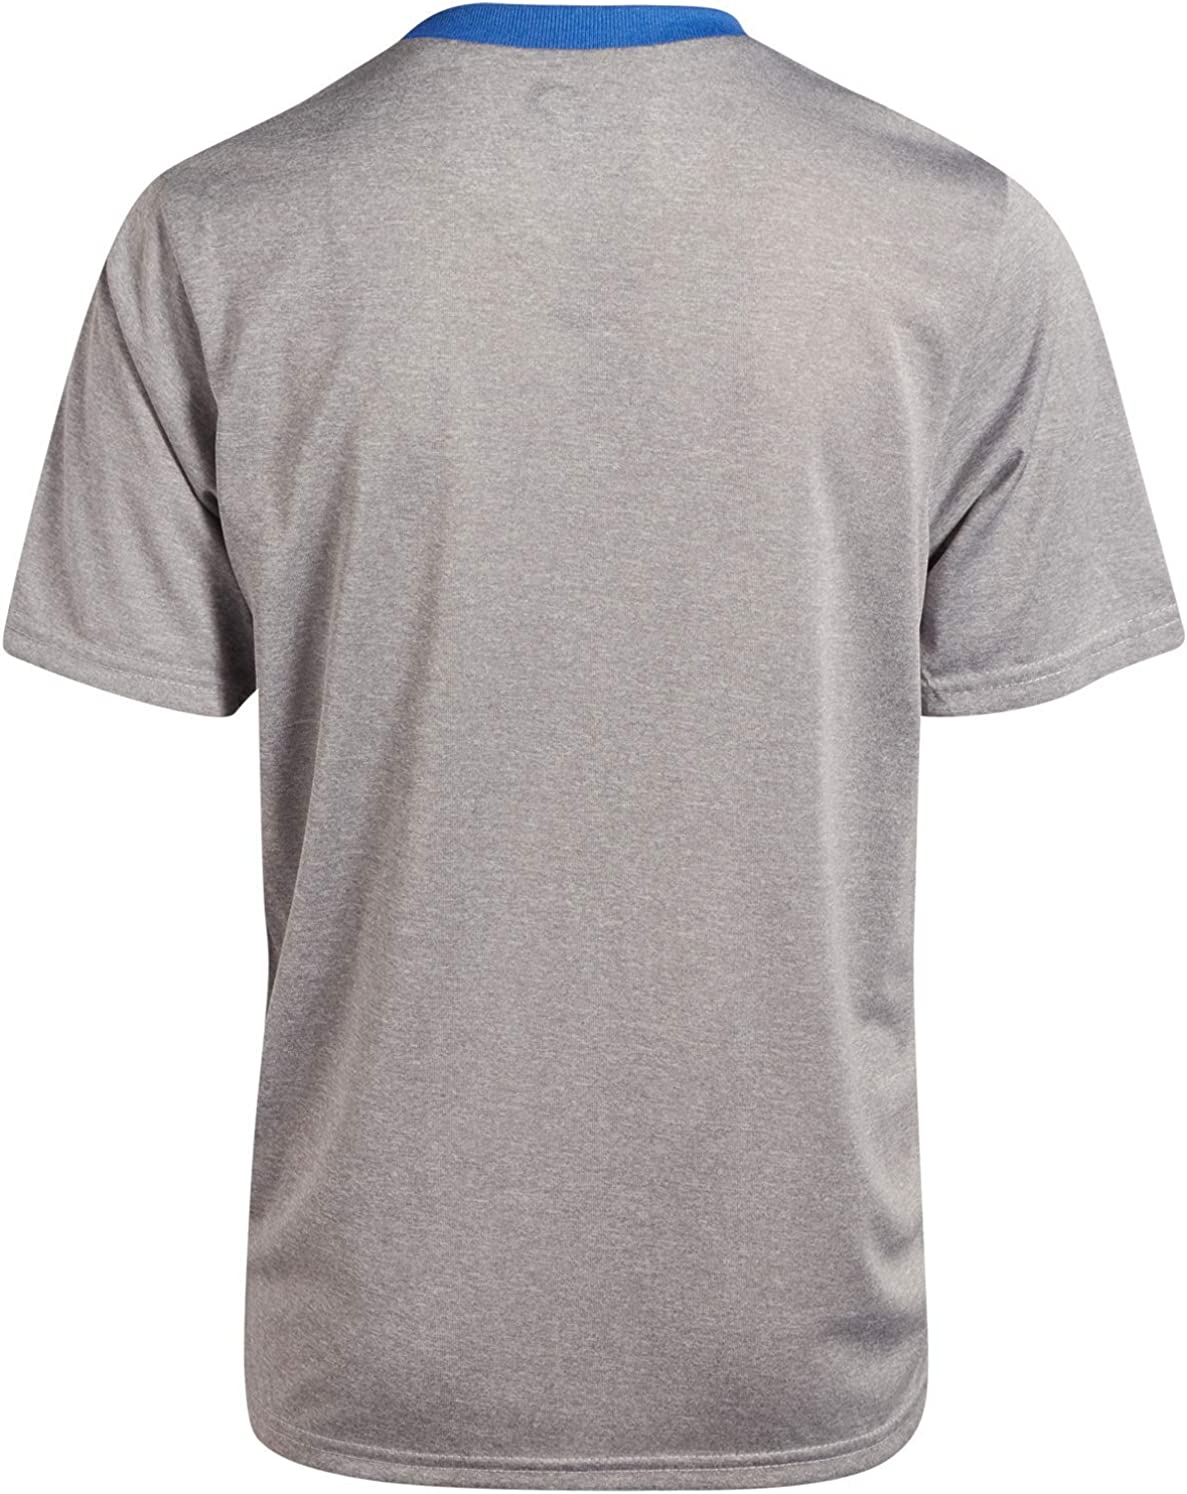 Pro Athlete Boys Quick Dry Athletic Performance T-Shirts 2-Pack